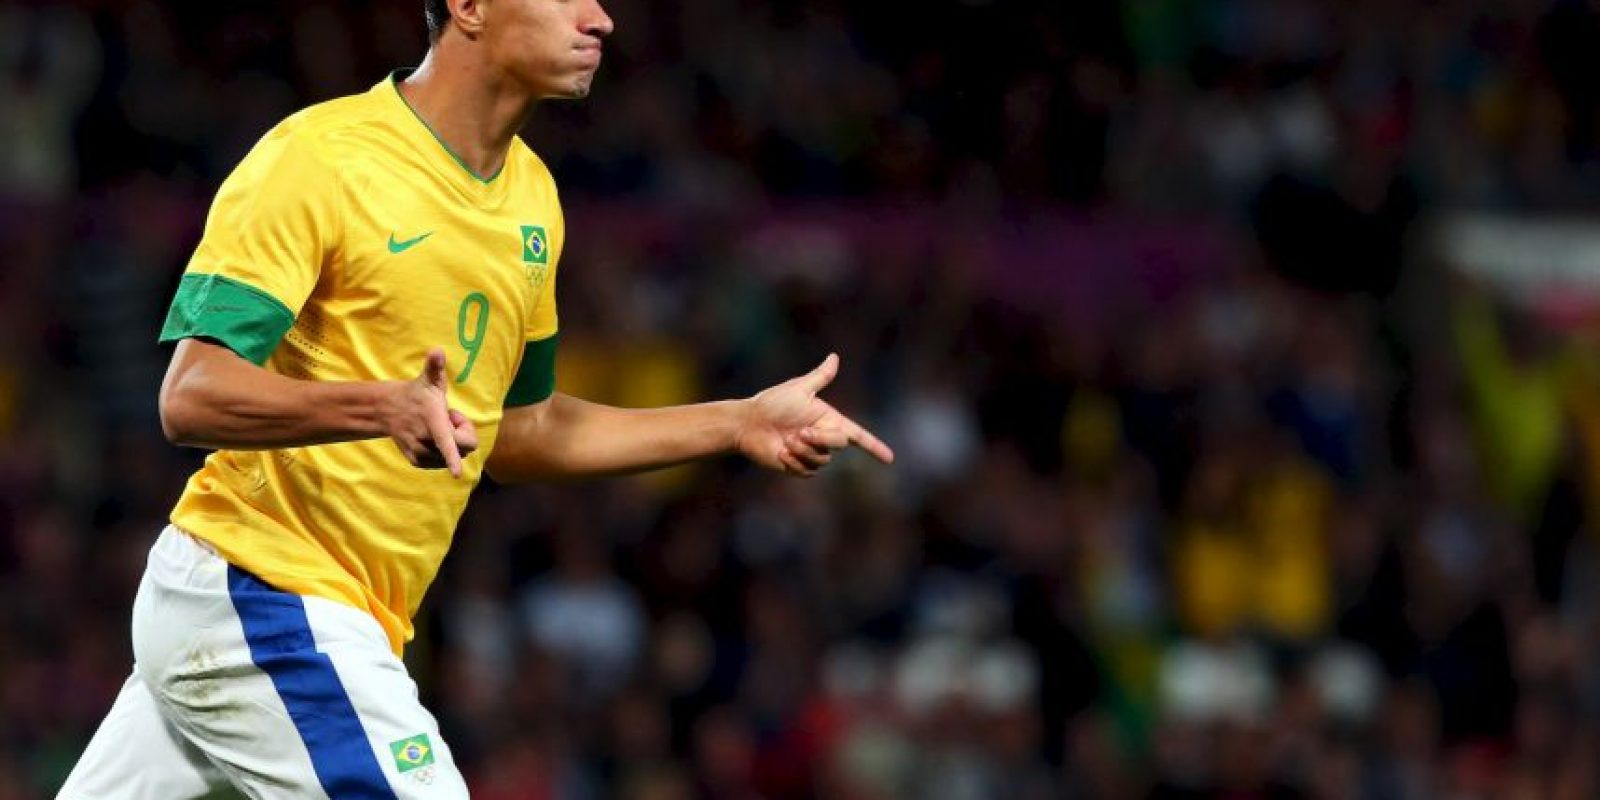 Londres 2012: Leandro Damiao (Brasil) – 6 goles Foto: Getty Images